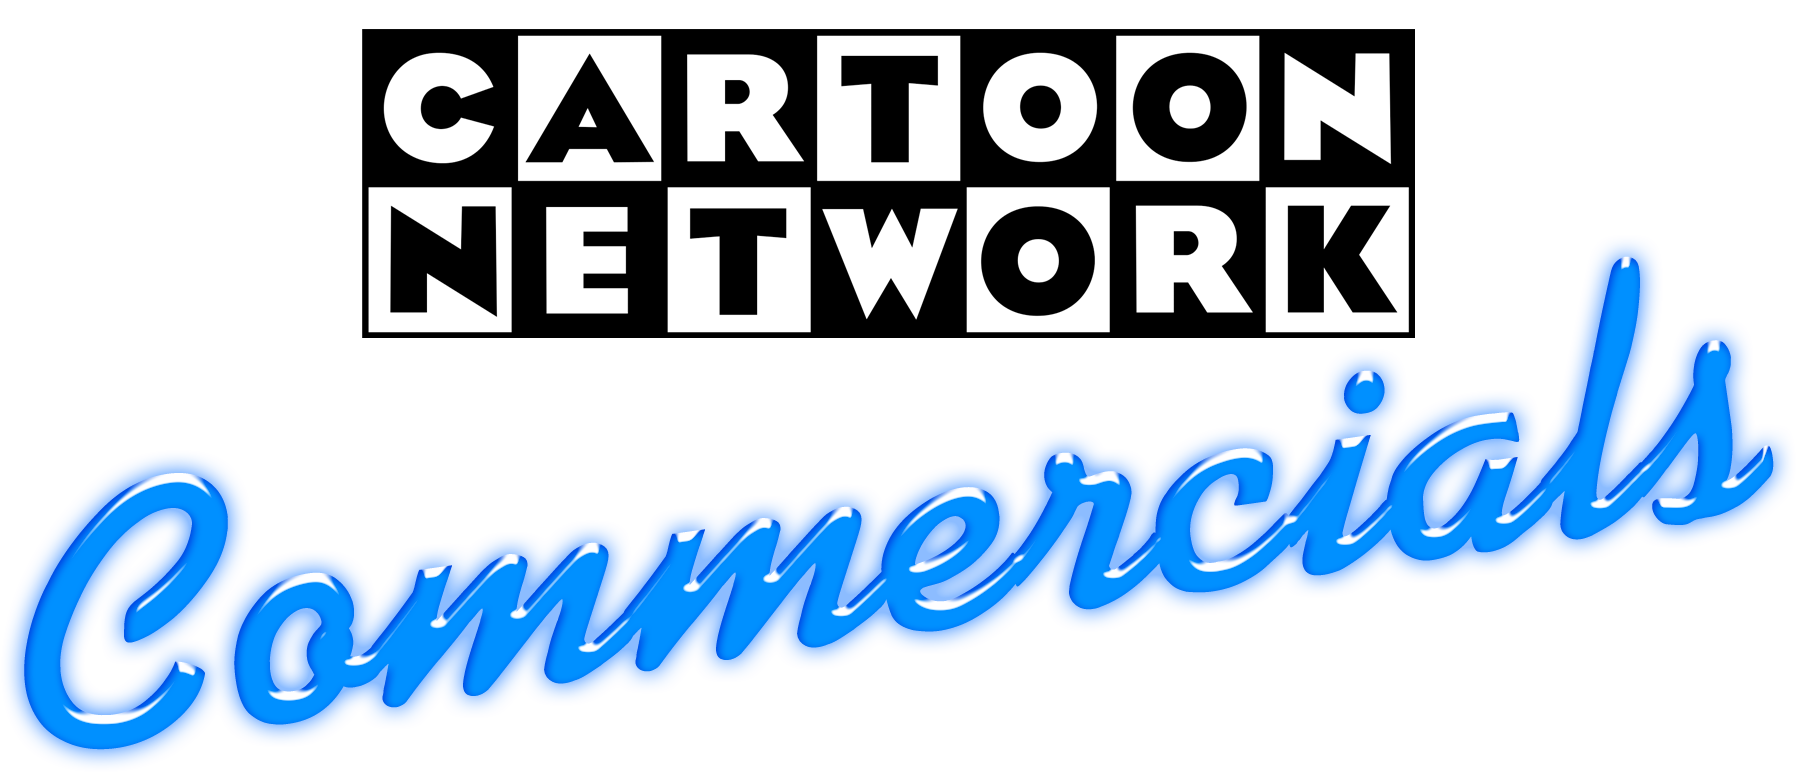 #11 Bonus Disc - Cartoon Network 90's Commercials Disc 2